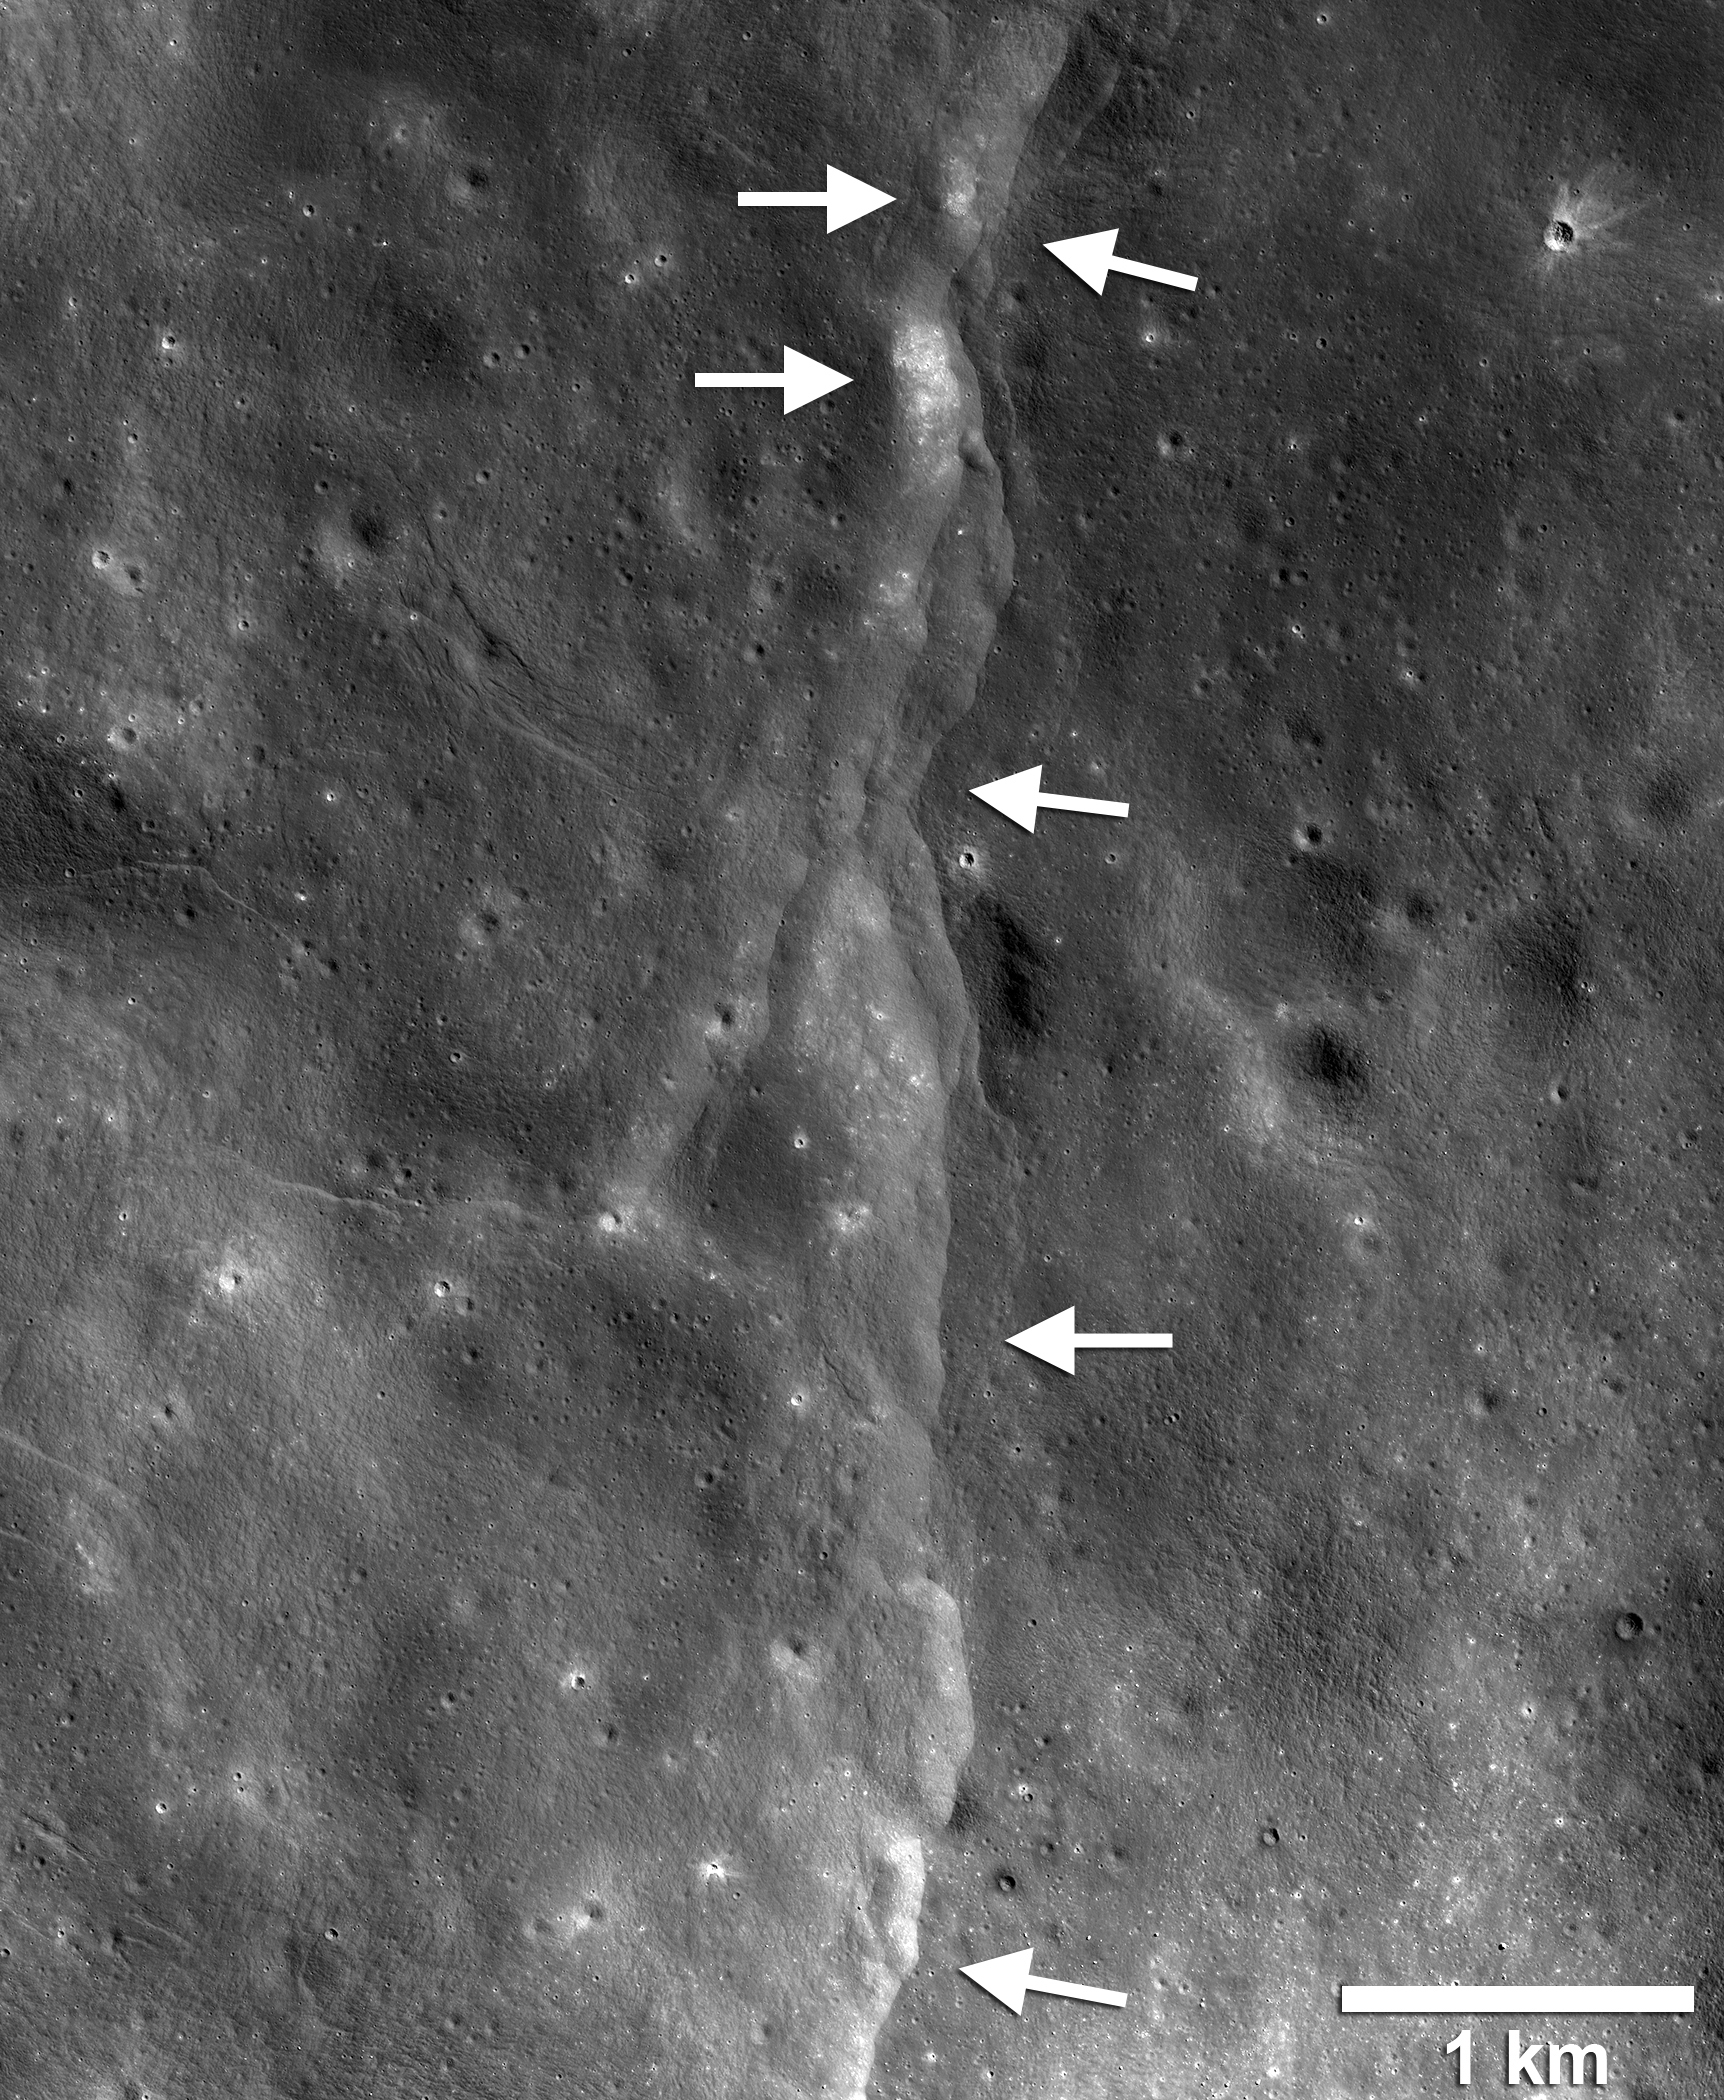 NASA says the moon is shrinking and experiencing